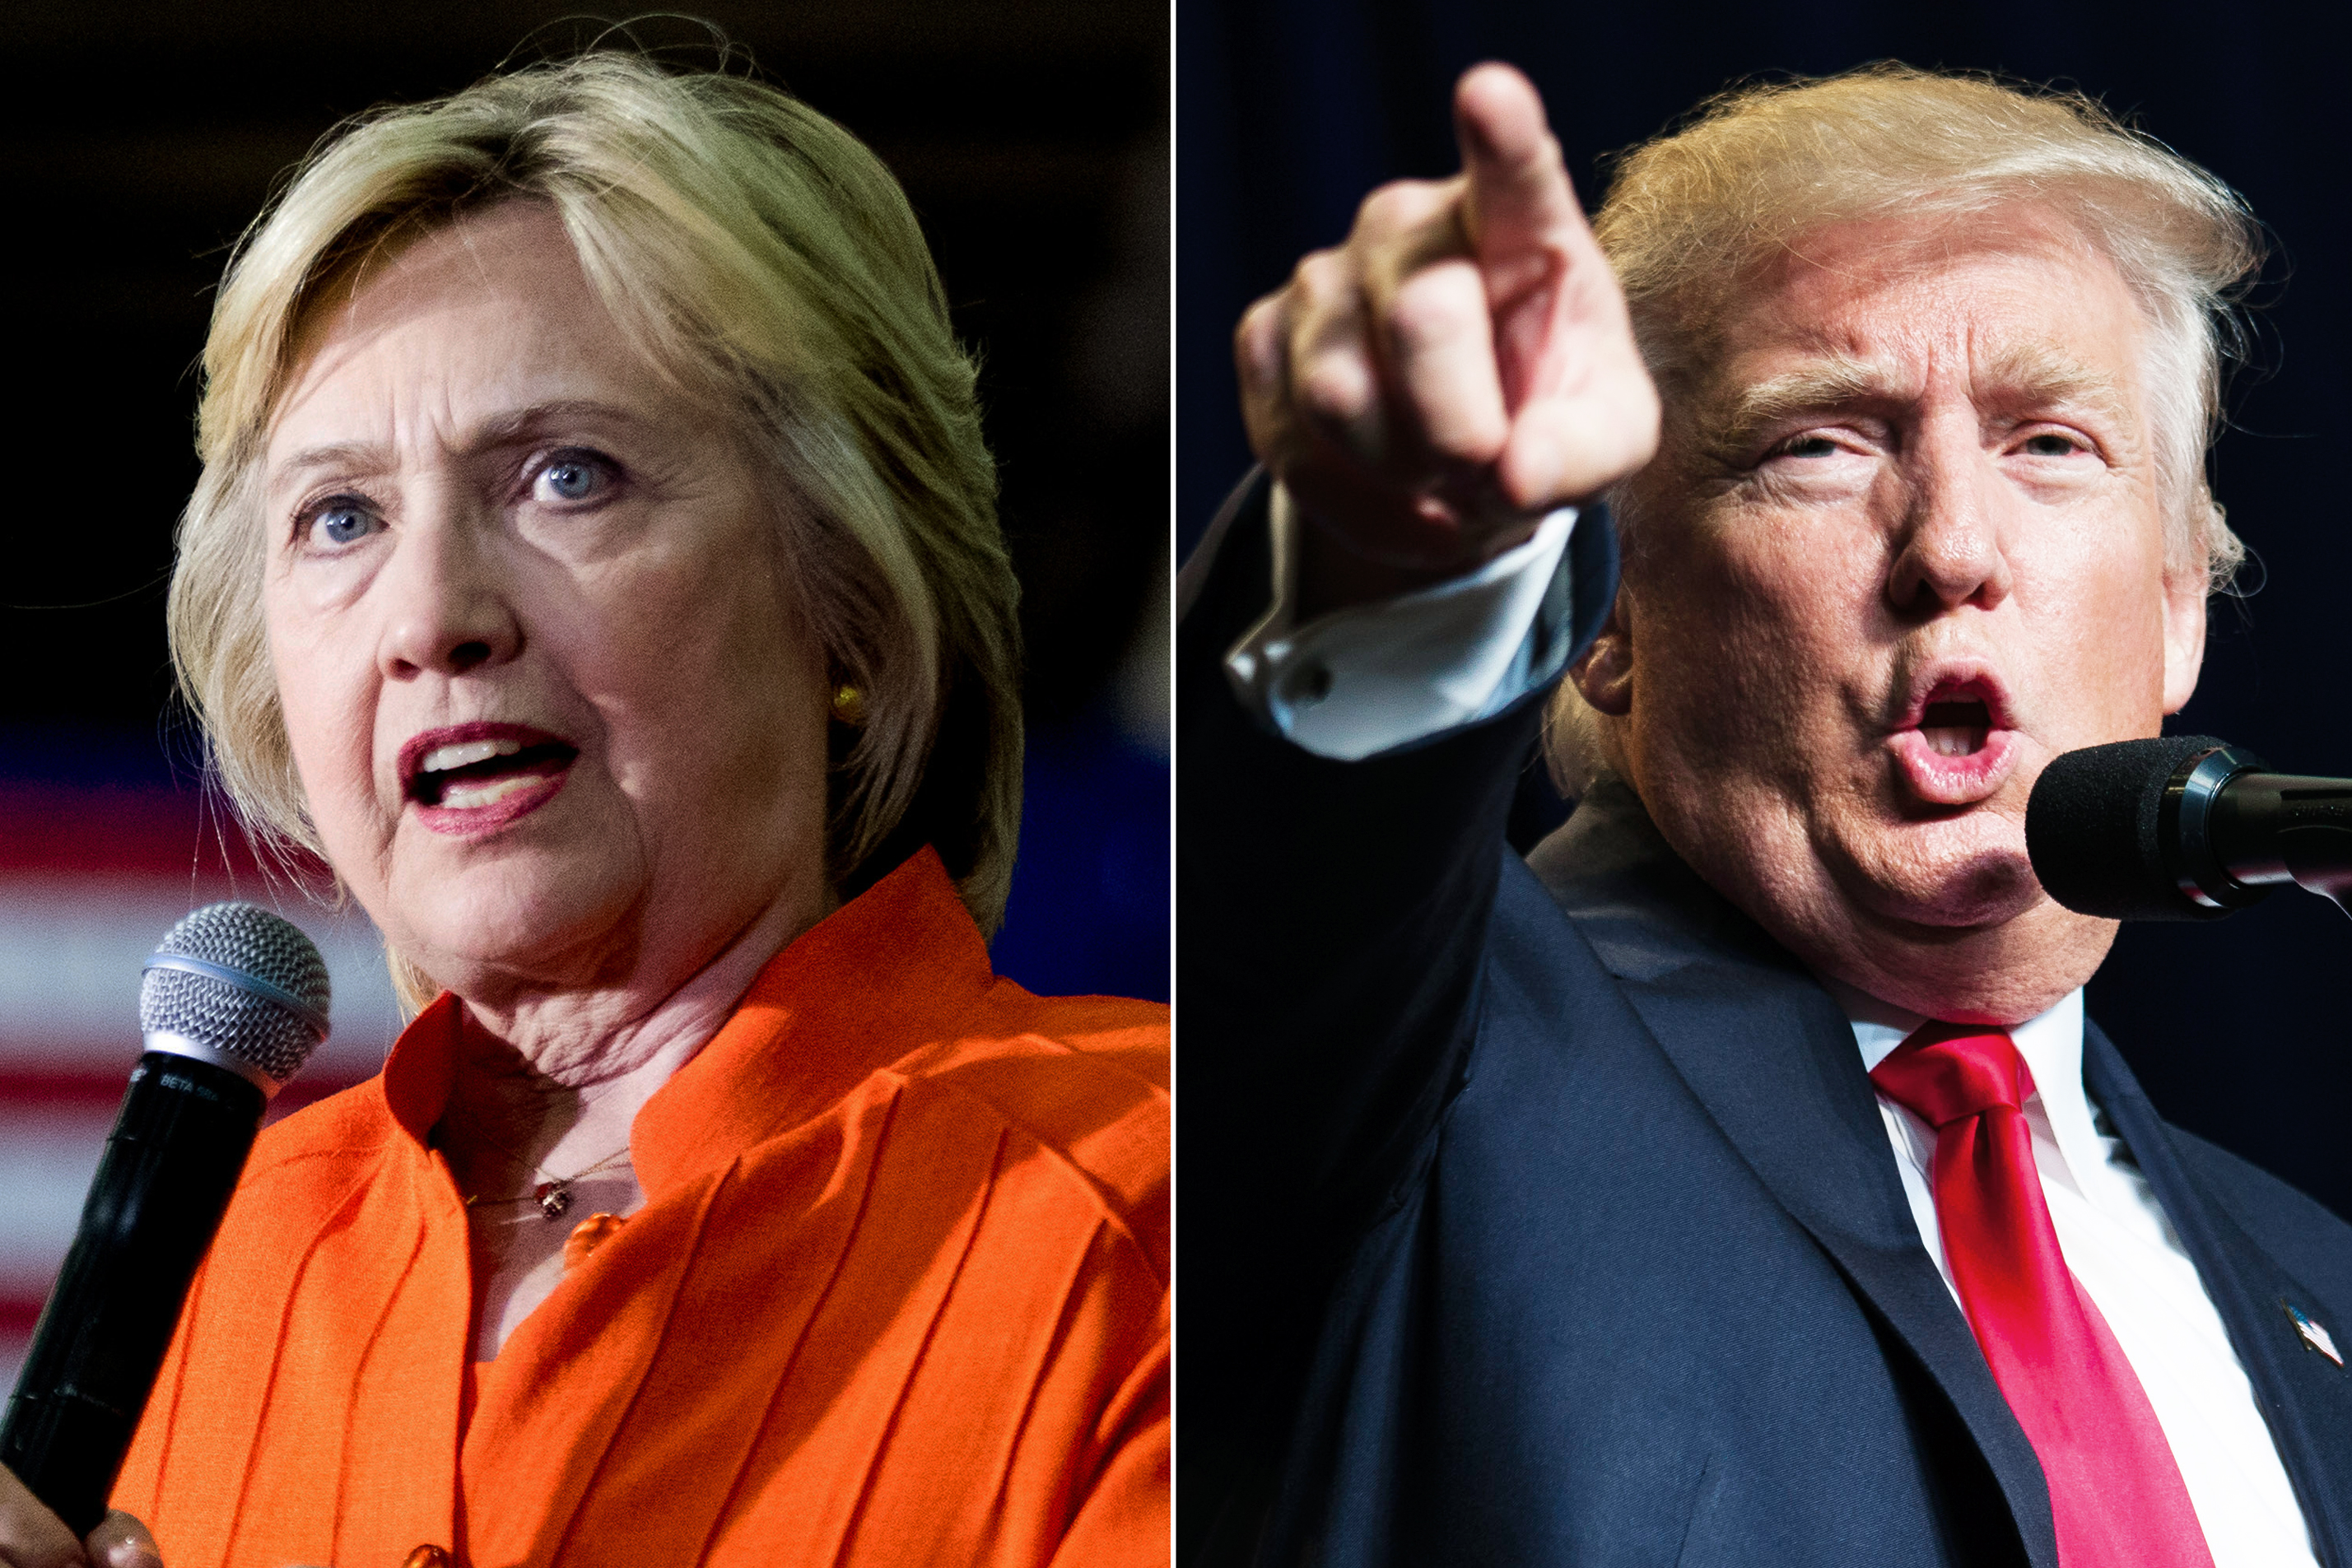 Hillary Clinton in St. Petersburg, FL, on Aug. 8, 2016 (L); Donald Trump in Green Bay, WI, on Aug. 5, 2016.